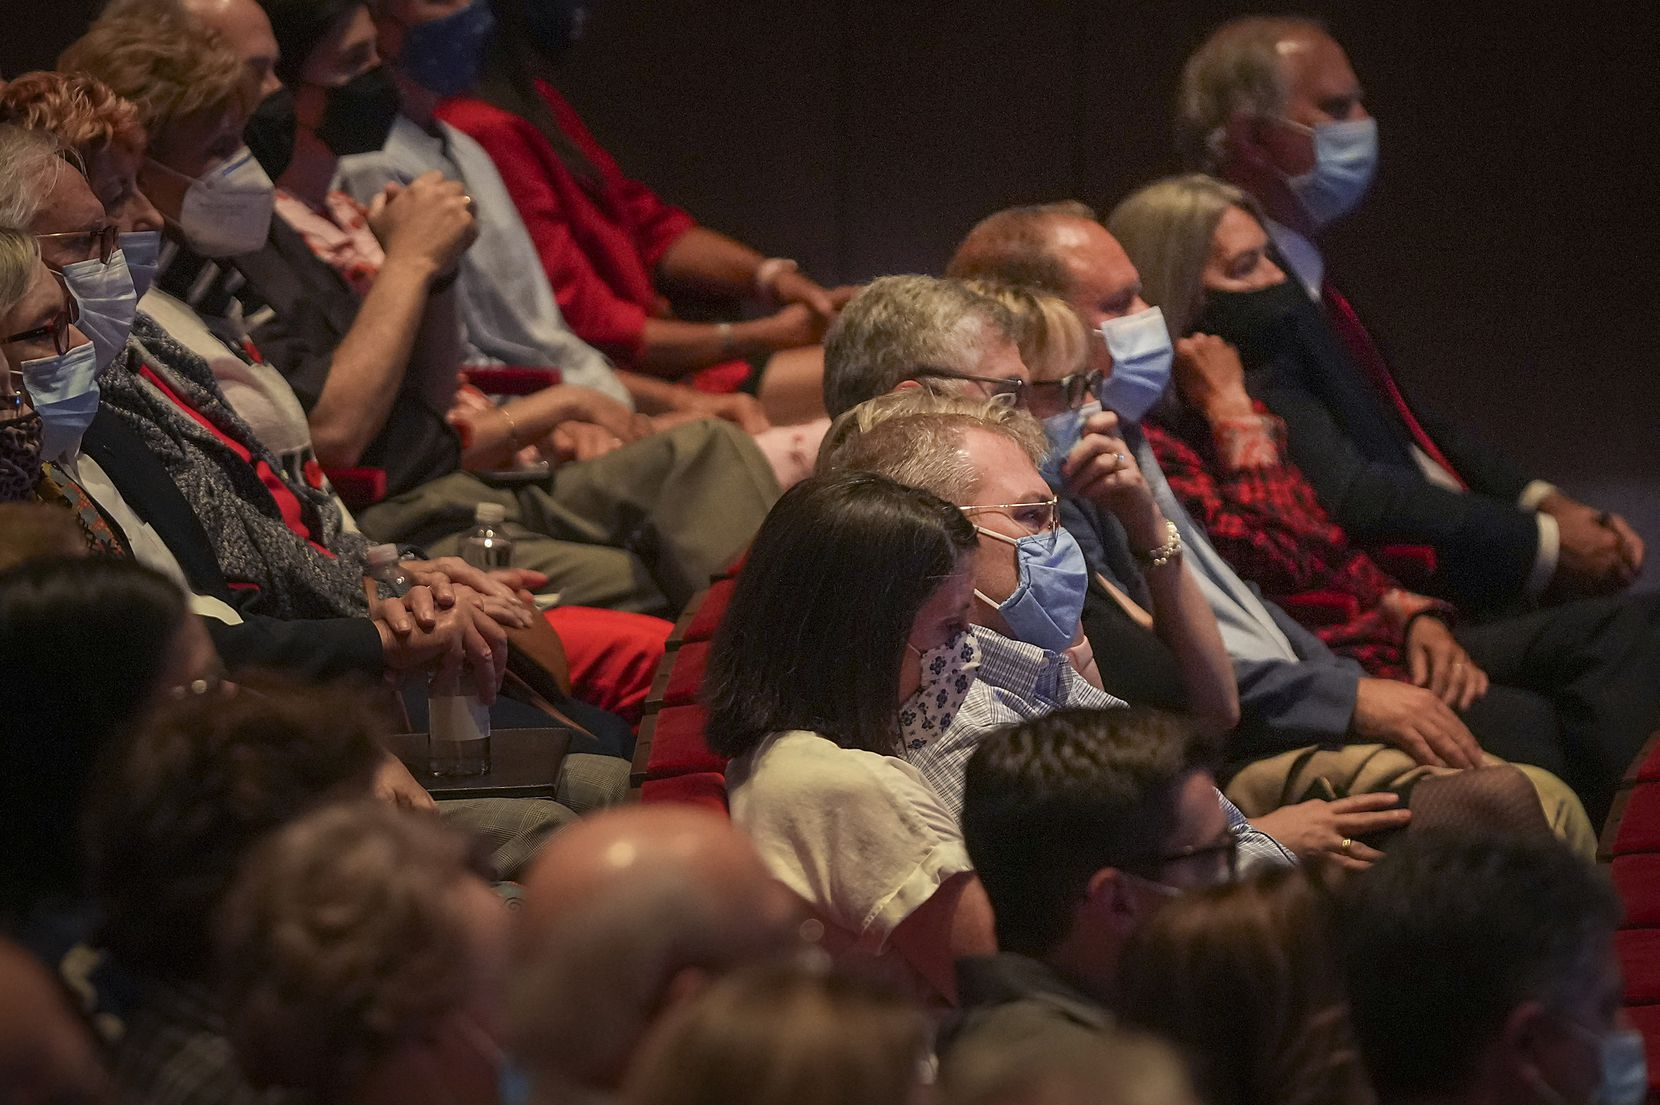 Guests watch a video of former President George W. Bush's speech at Shanksville, Pa., which he delivered earlier Saturday.